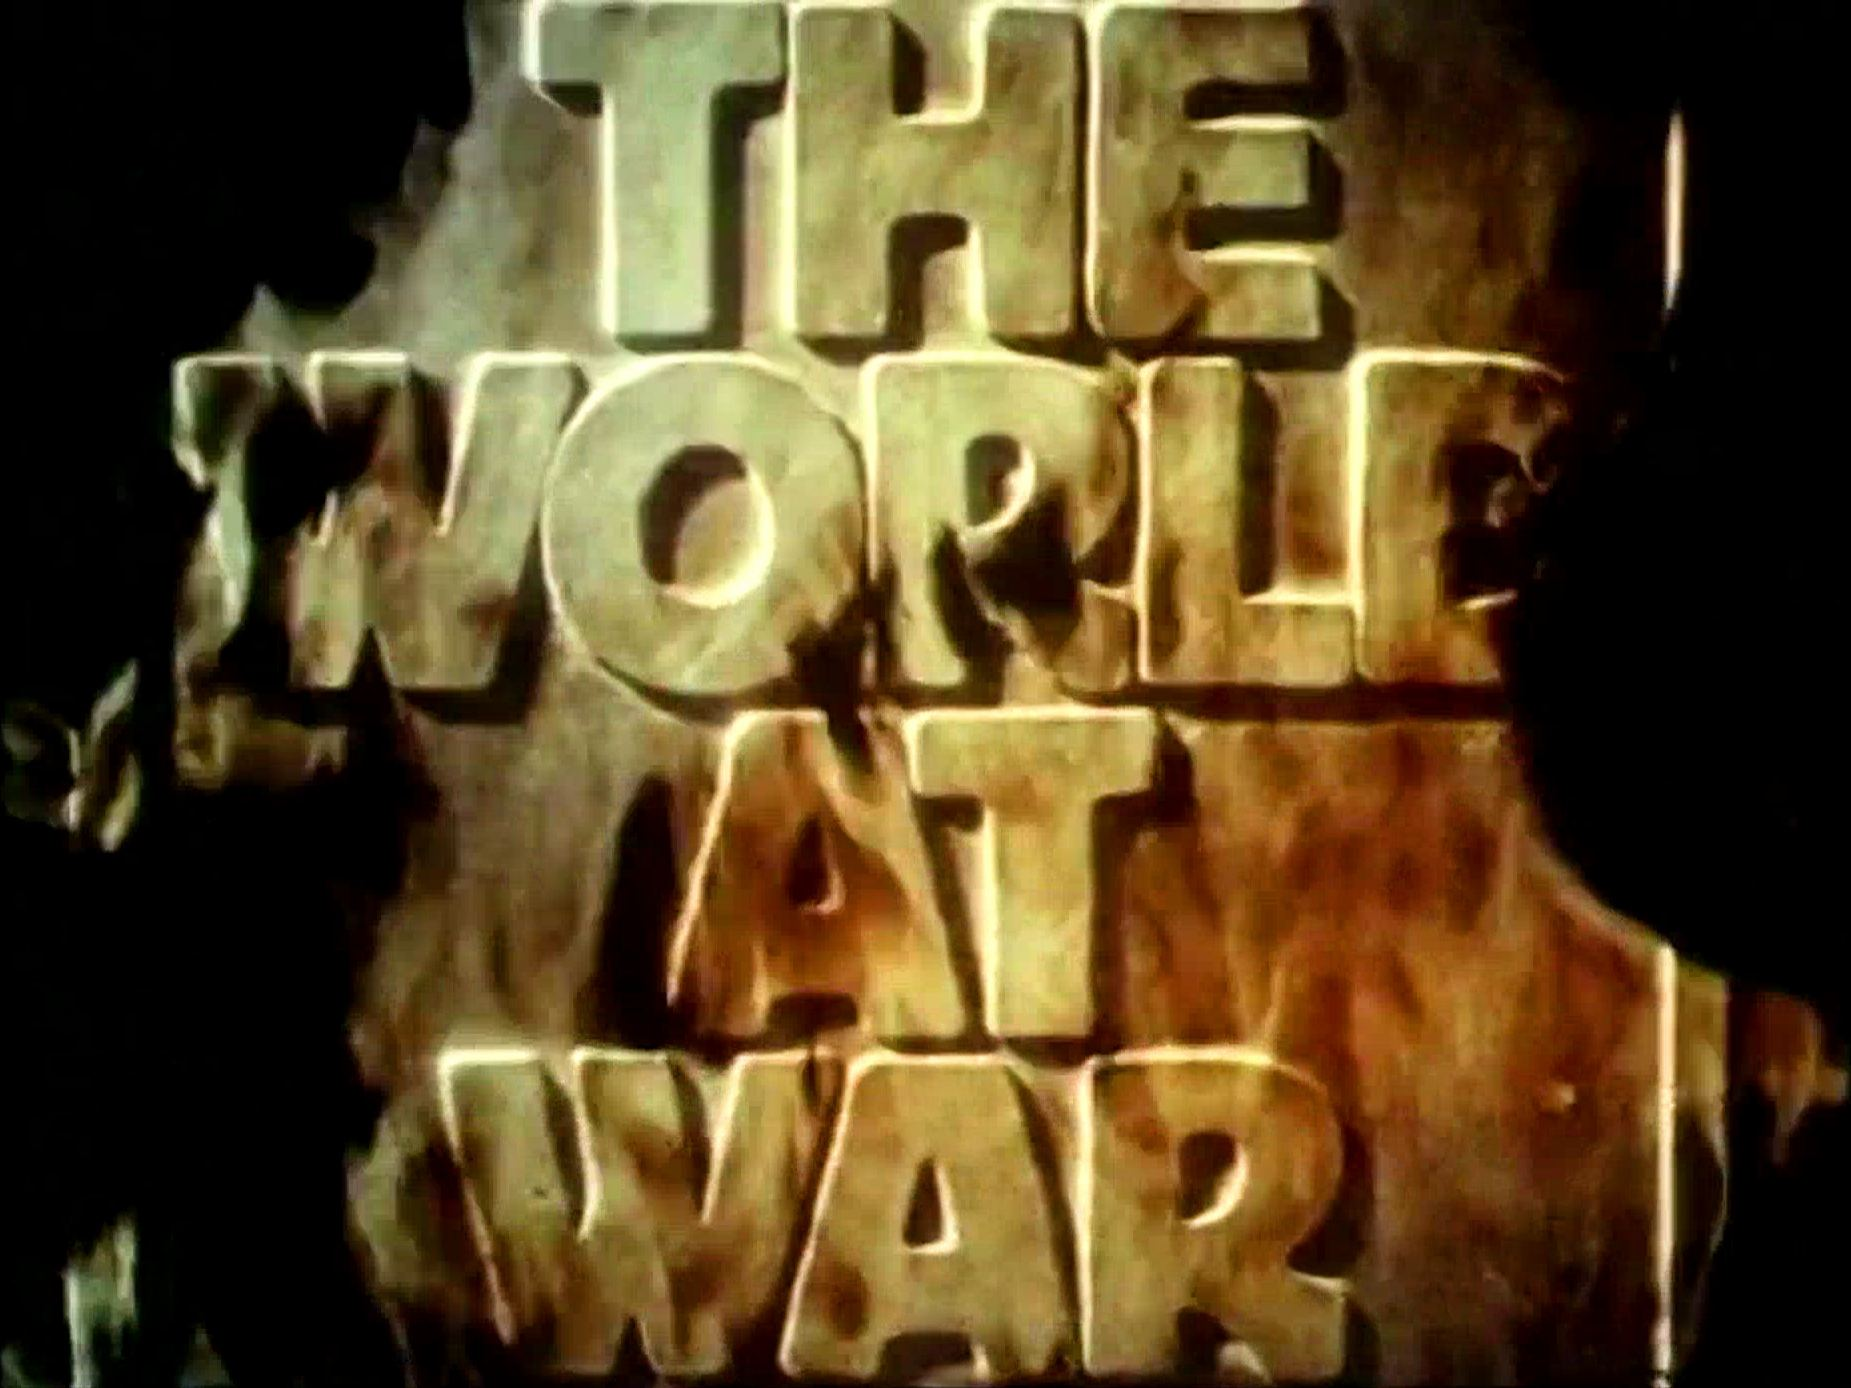 Main title from the Thames Television series, The World at War (1973-74)